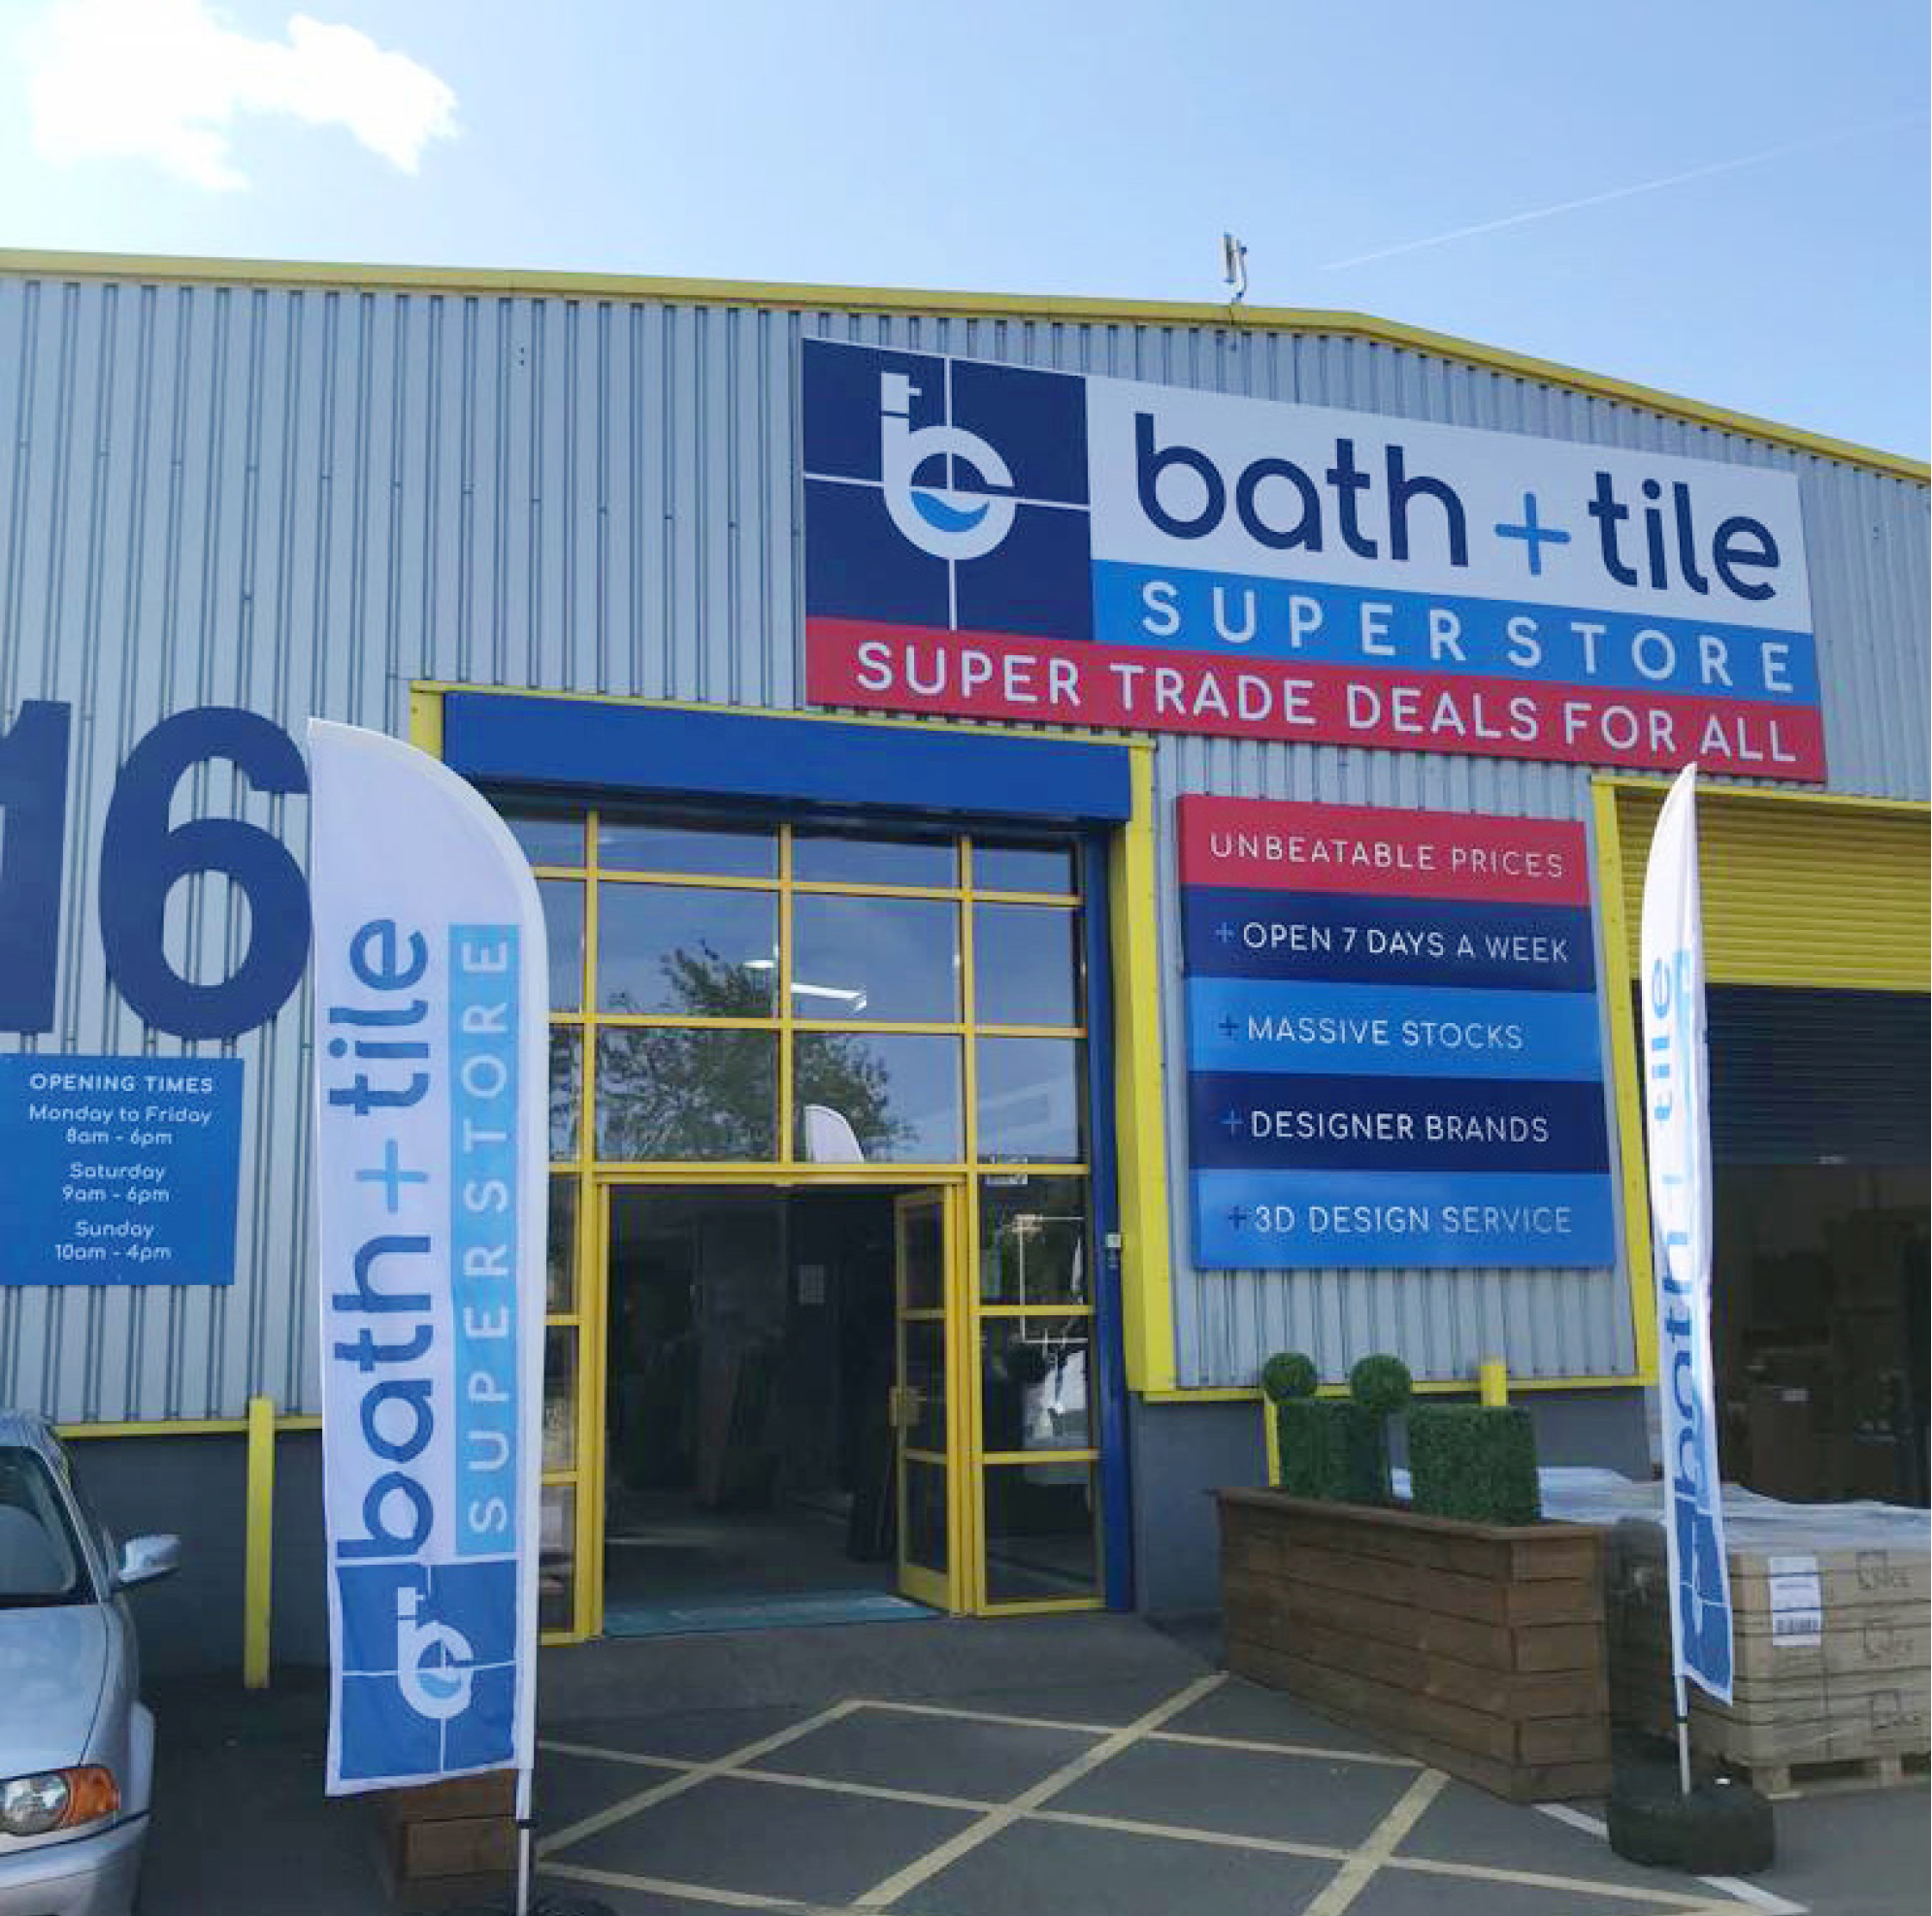 Bath+Tile Superstore